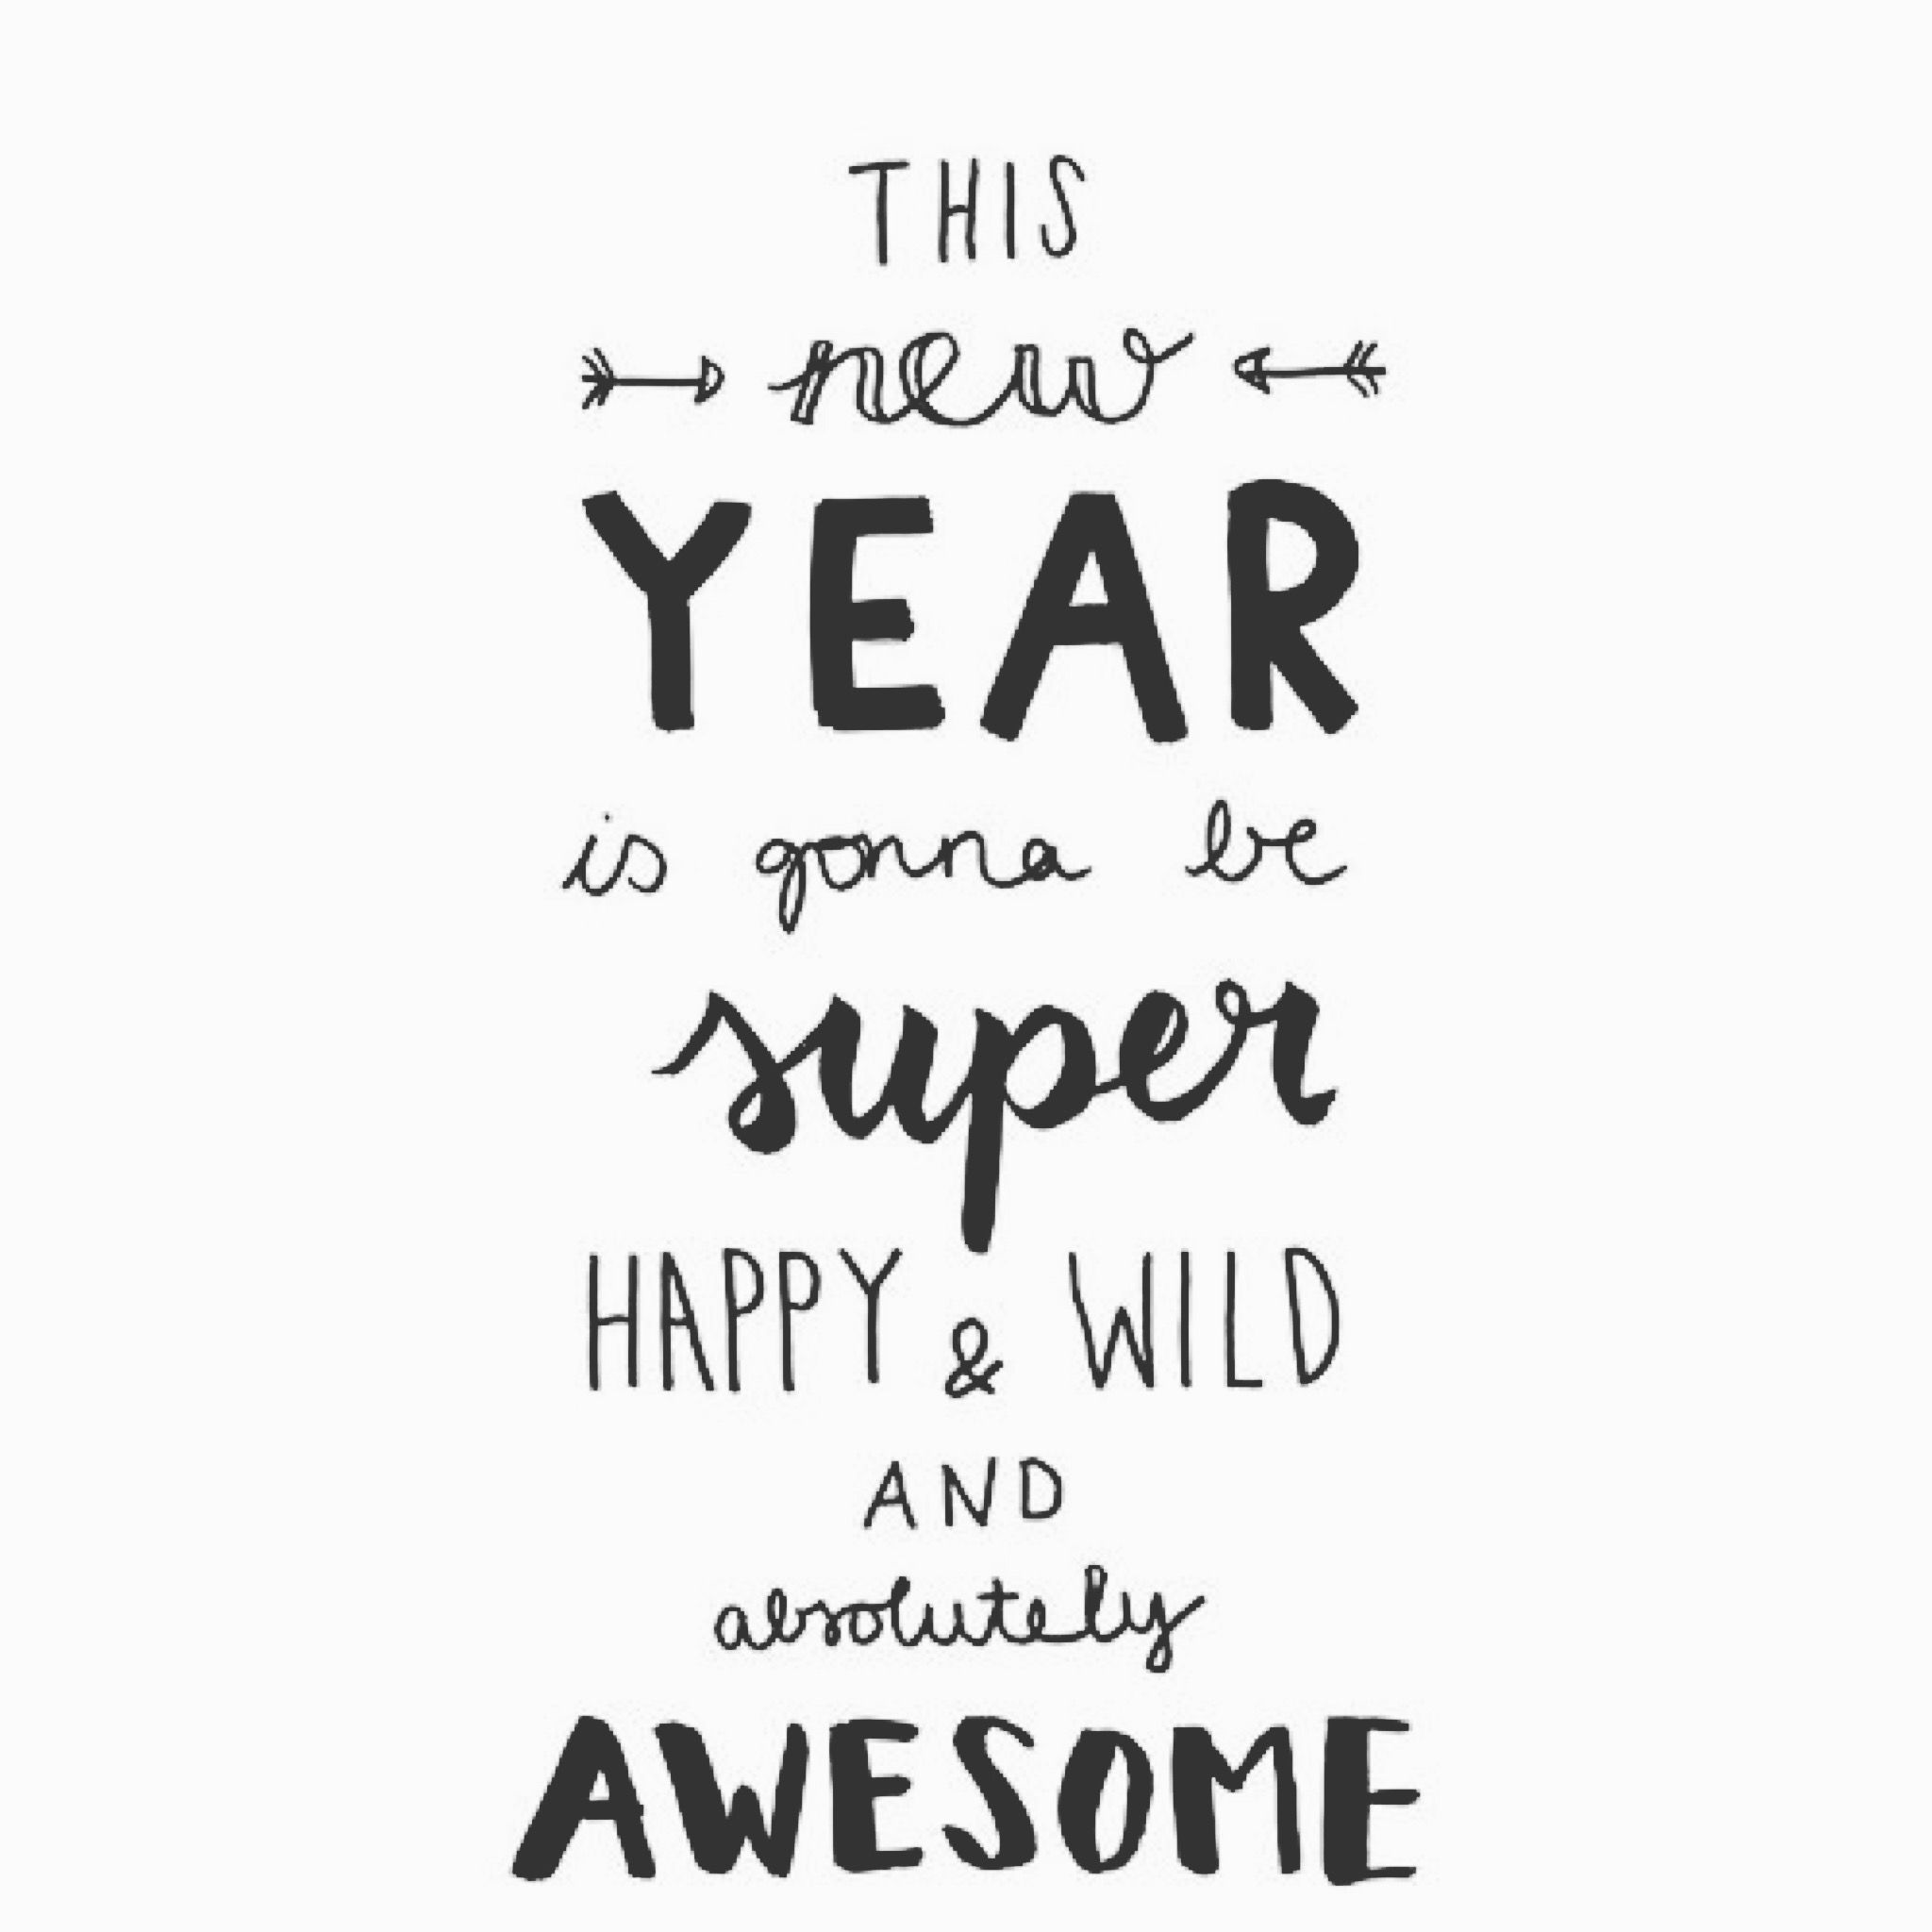 Happy New Year Photographers Let This Year Be The Best One Yet New Year Wishes Quotes Quotes About New Year Happy New Year Quotes